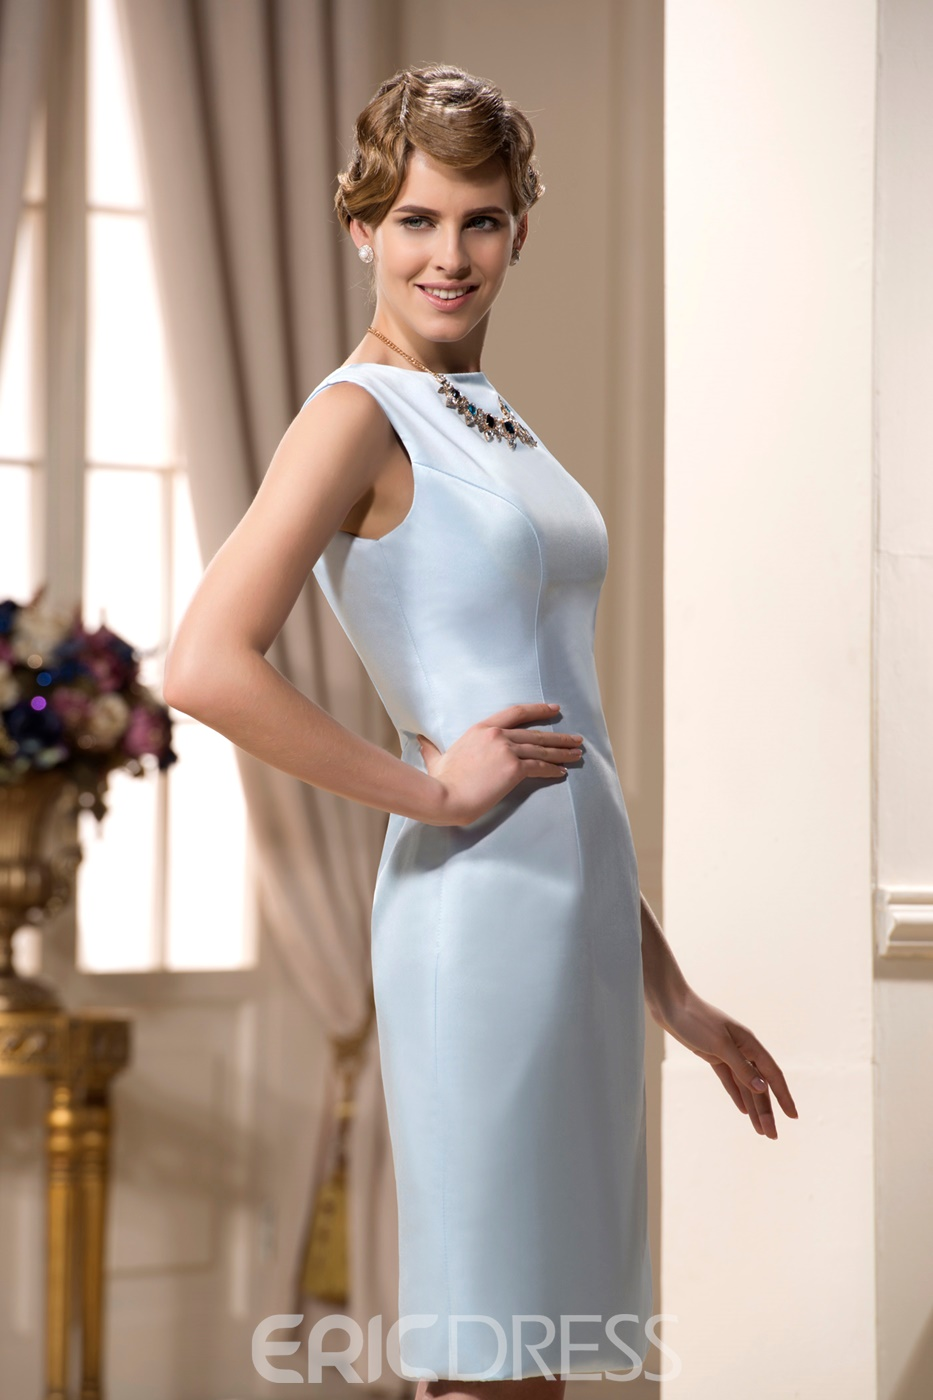 Incredible A-Line Jewel Neckline Knee-Length Mother of the Bride Dress